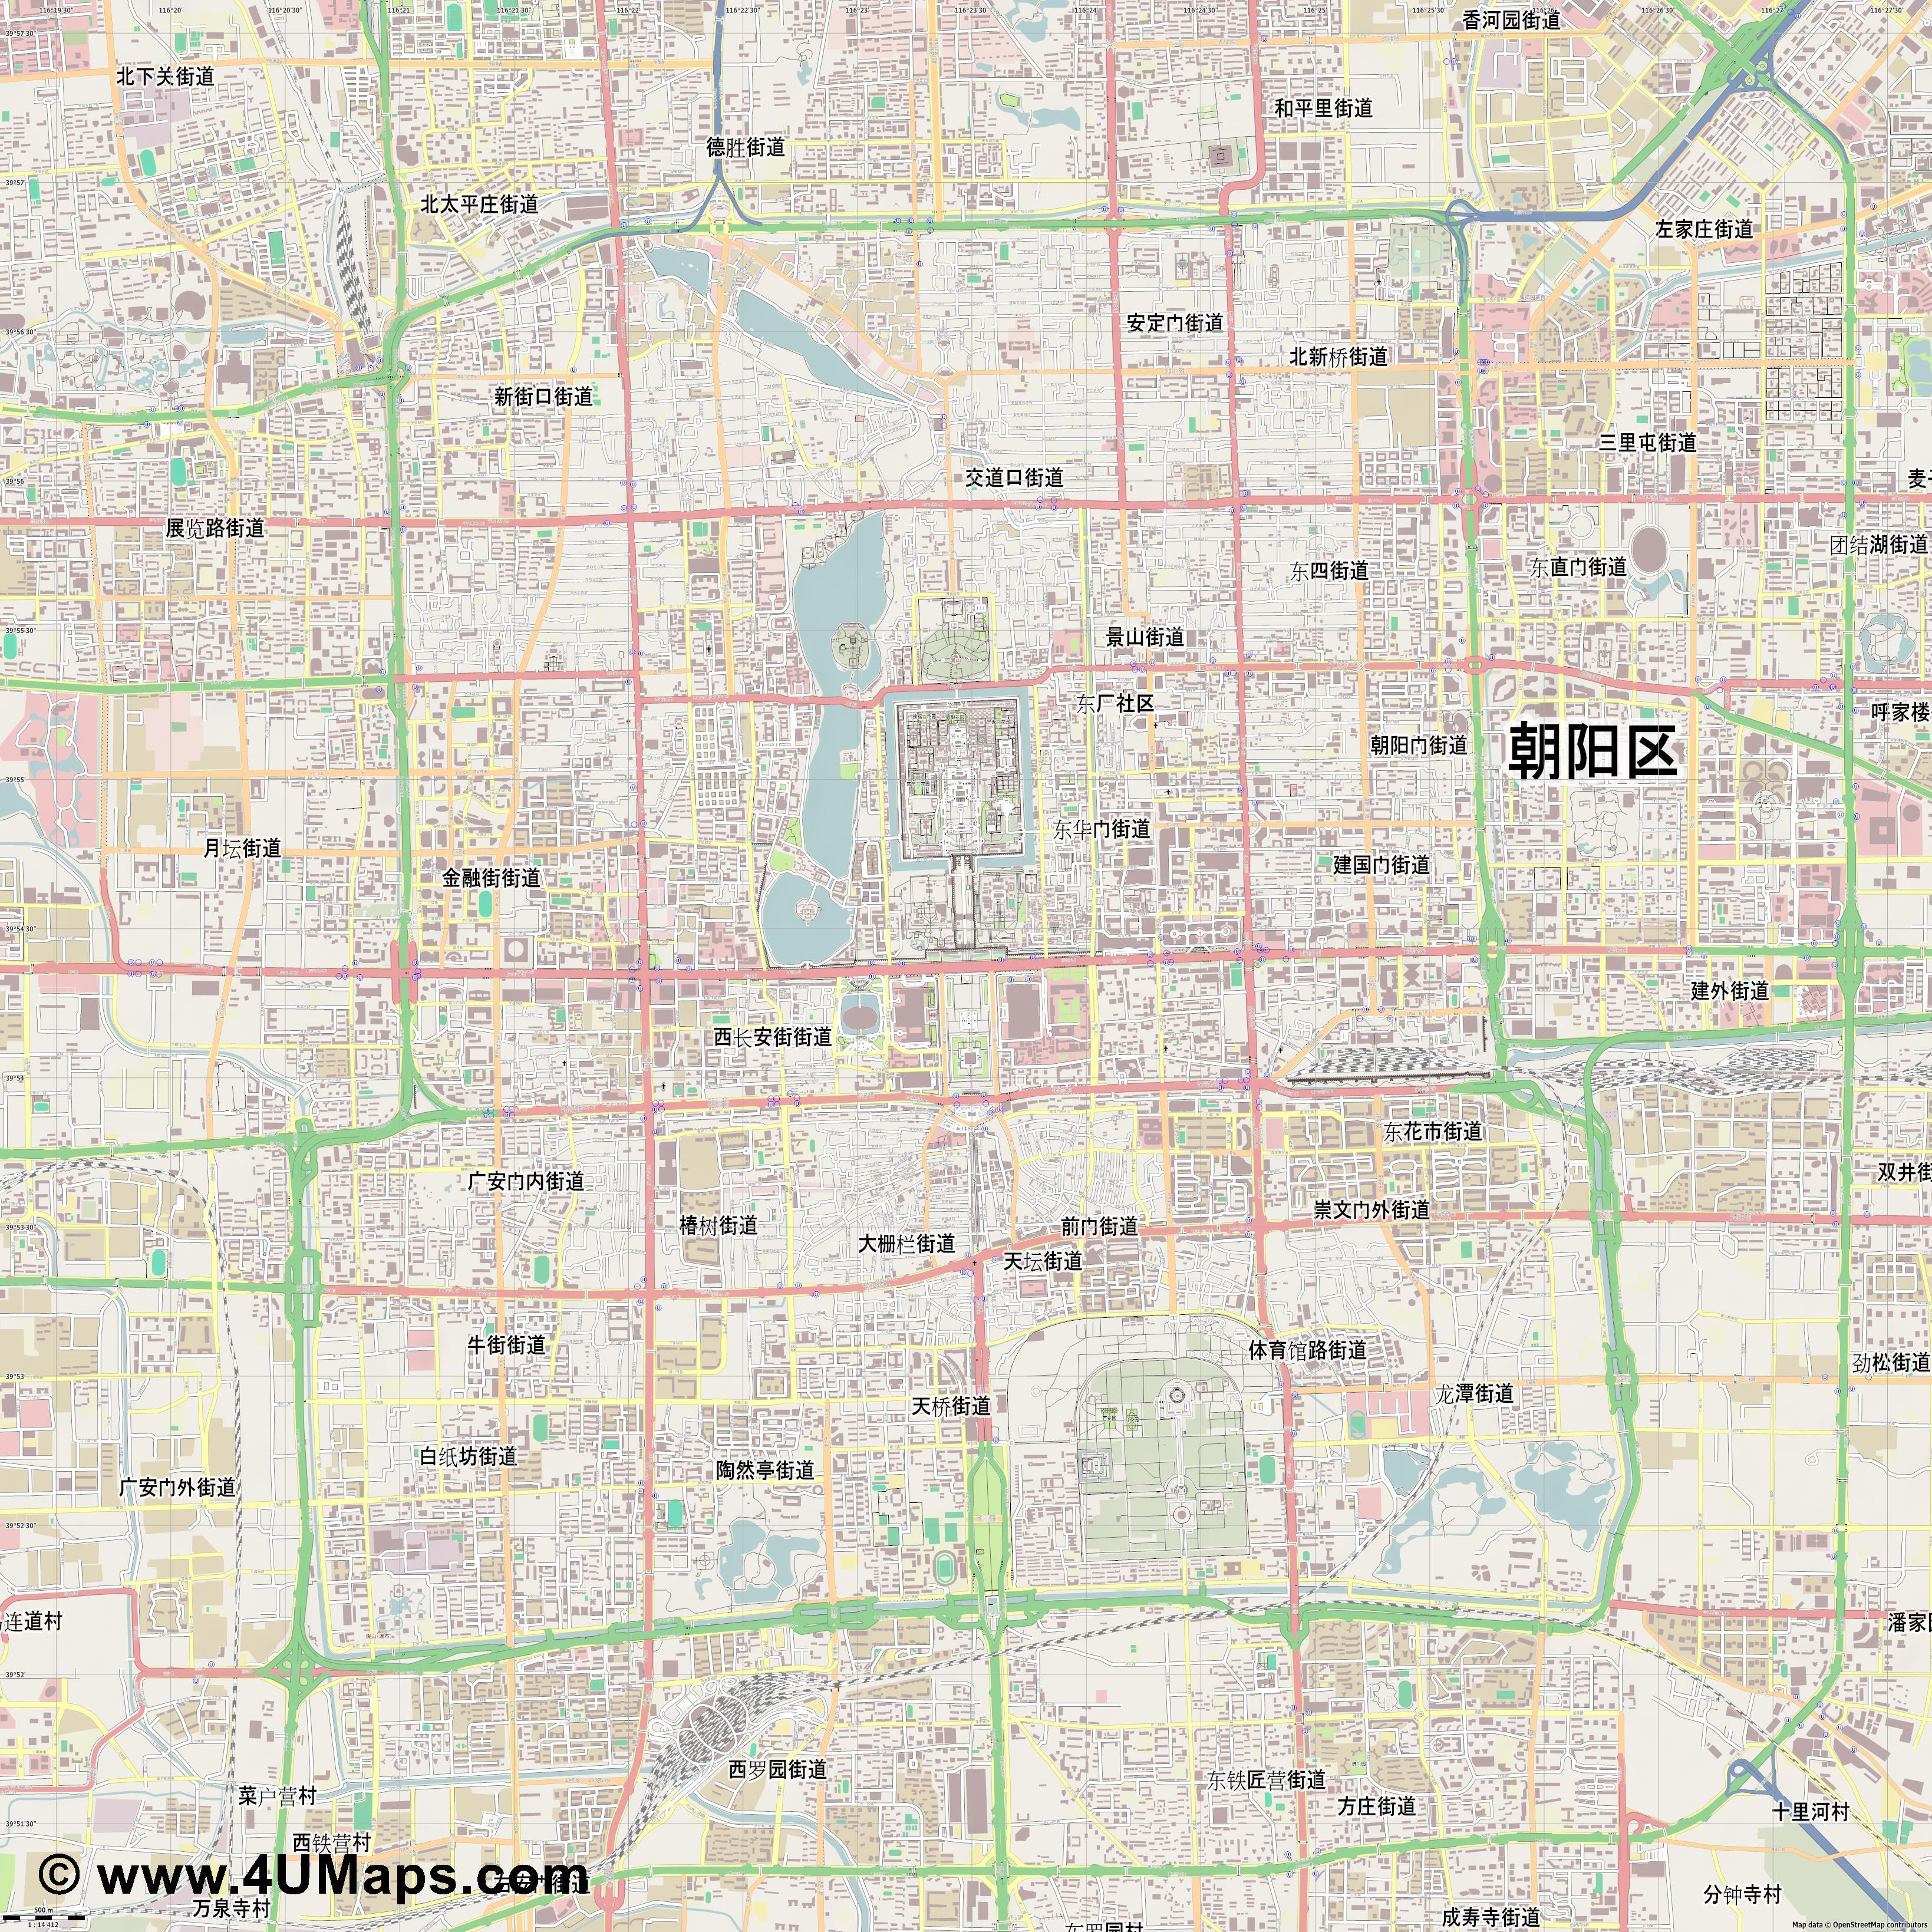 北京市 Beijing Pekín Pékin Pechino Peking  jpg ultra high detail preview vector city map